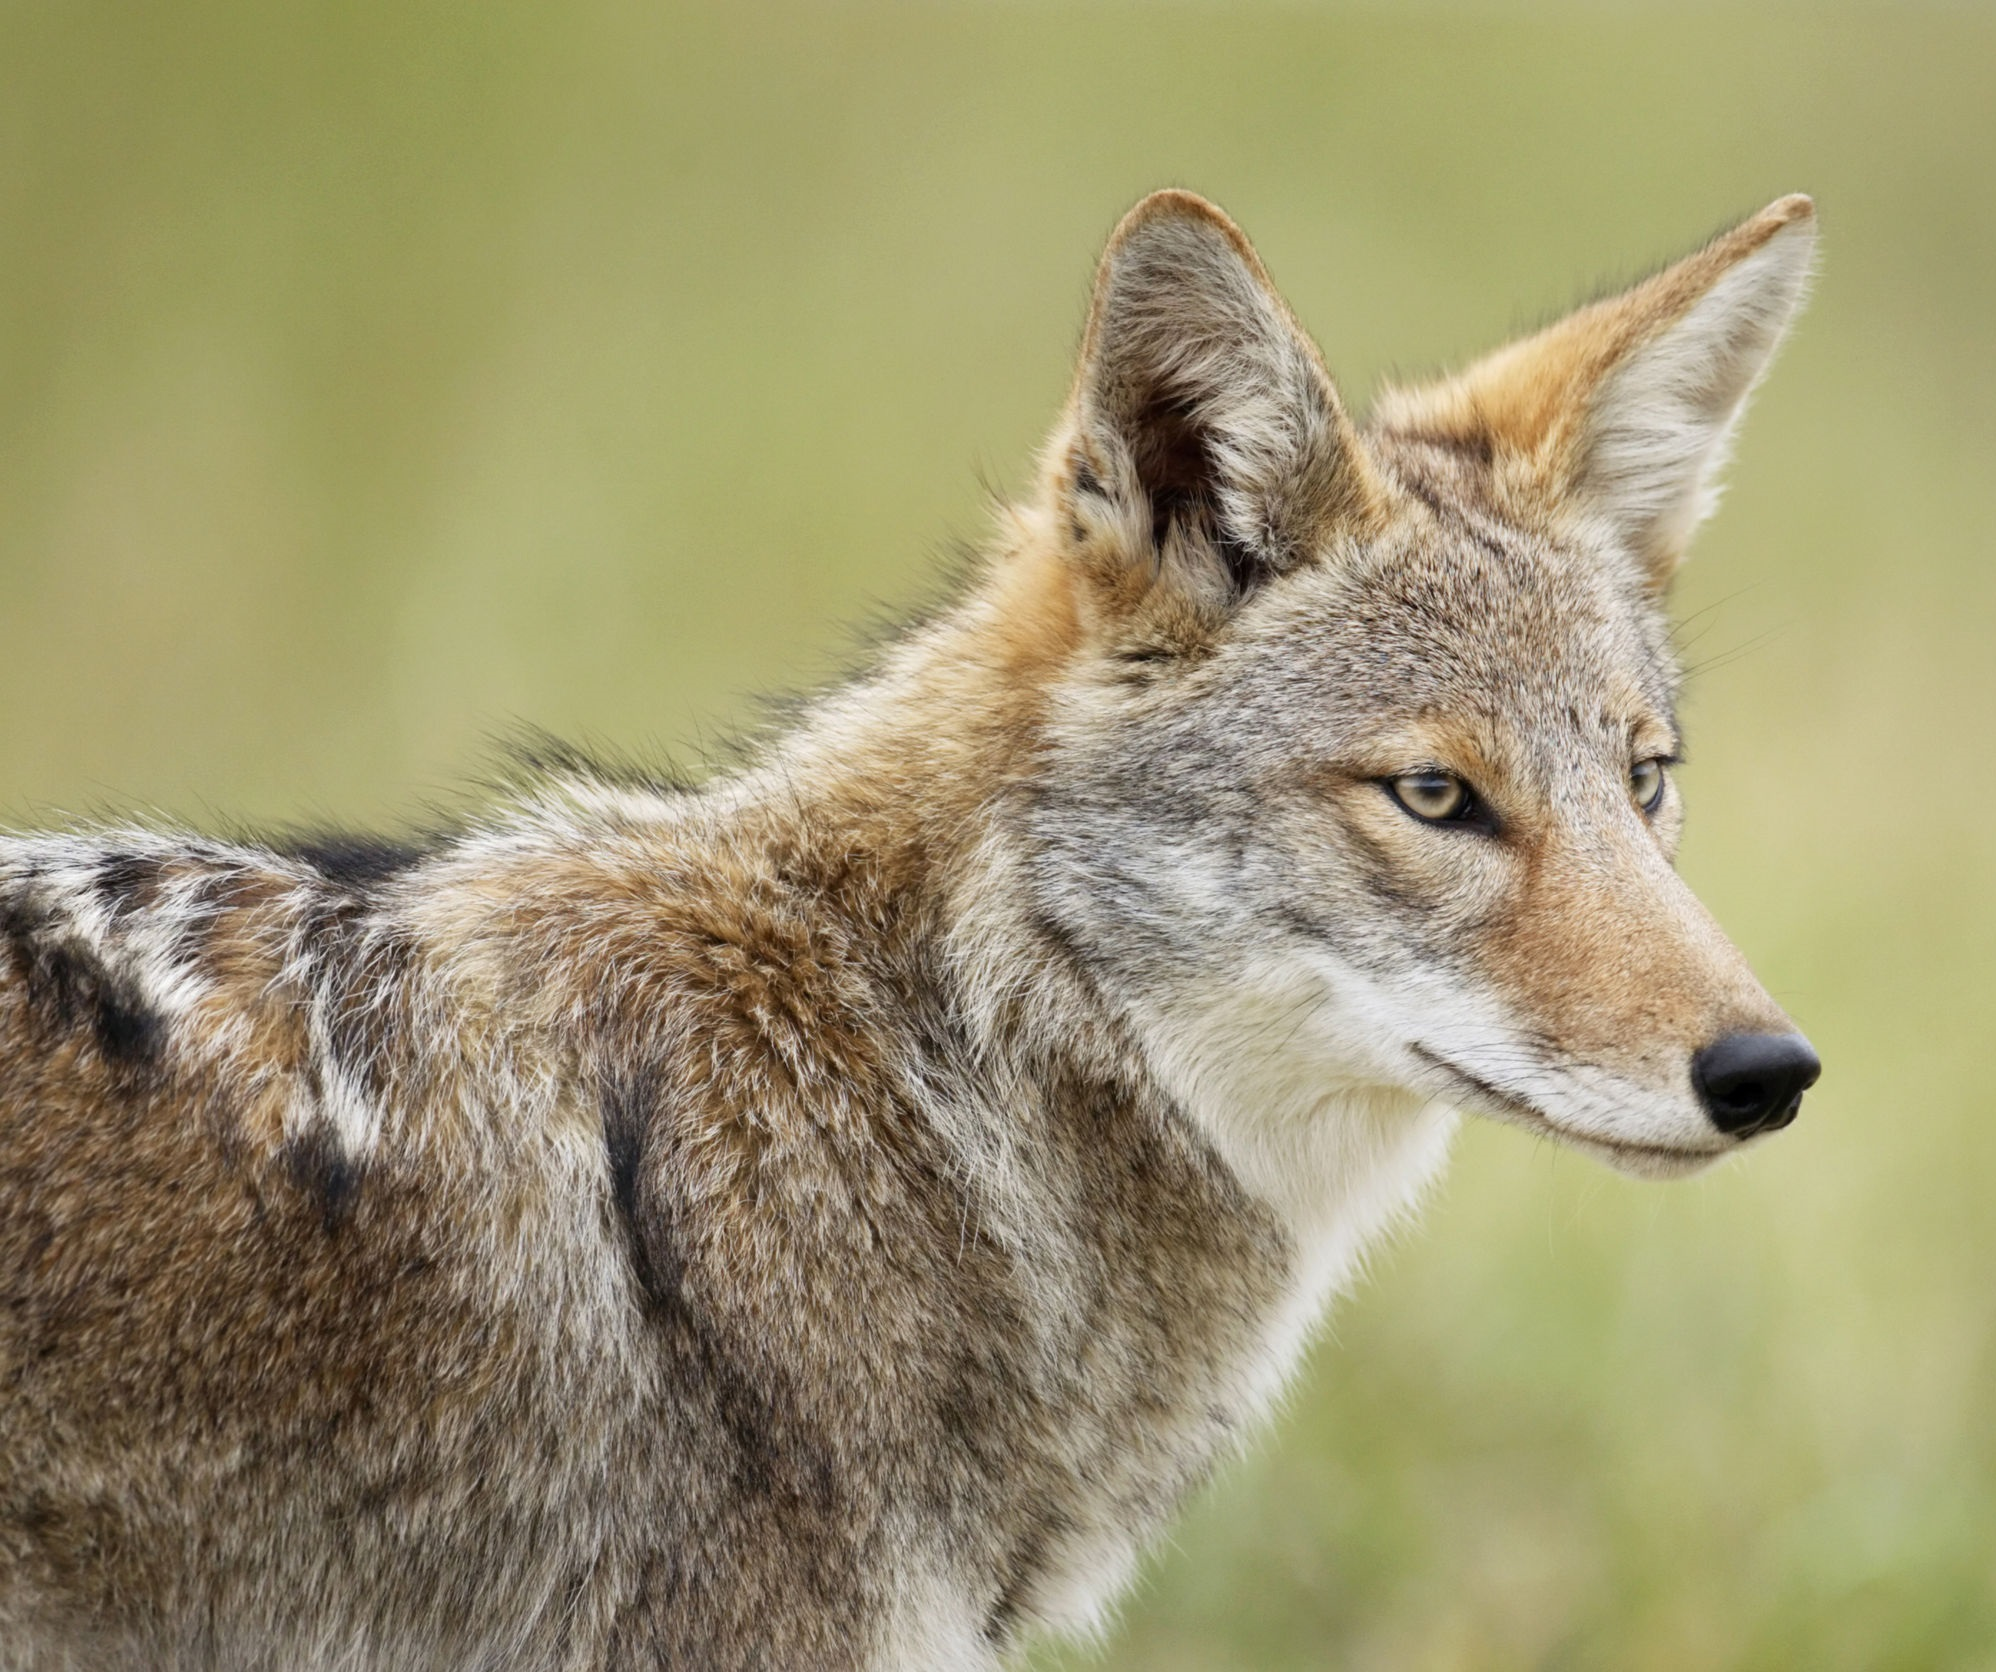 coyotes are thinner and more brown in color than fox